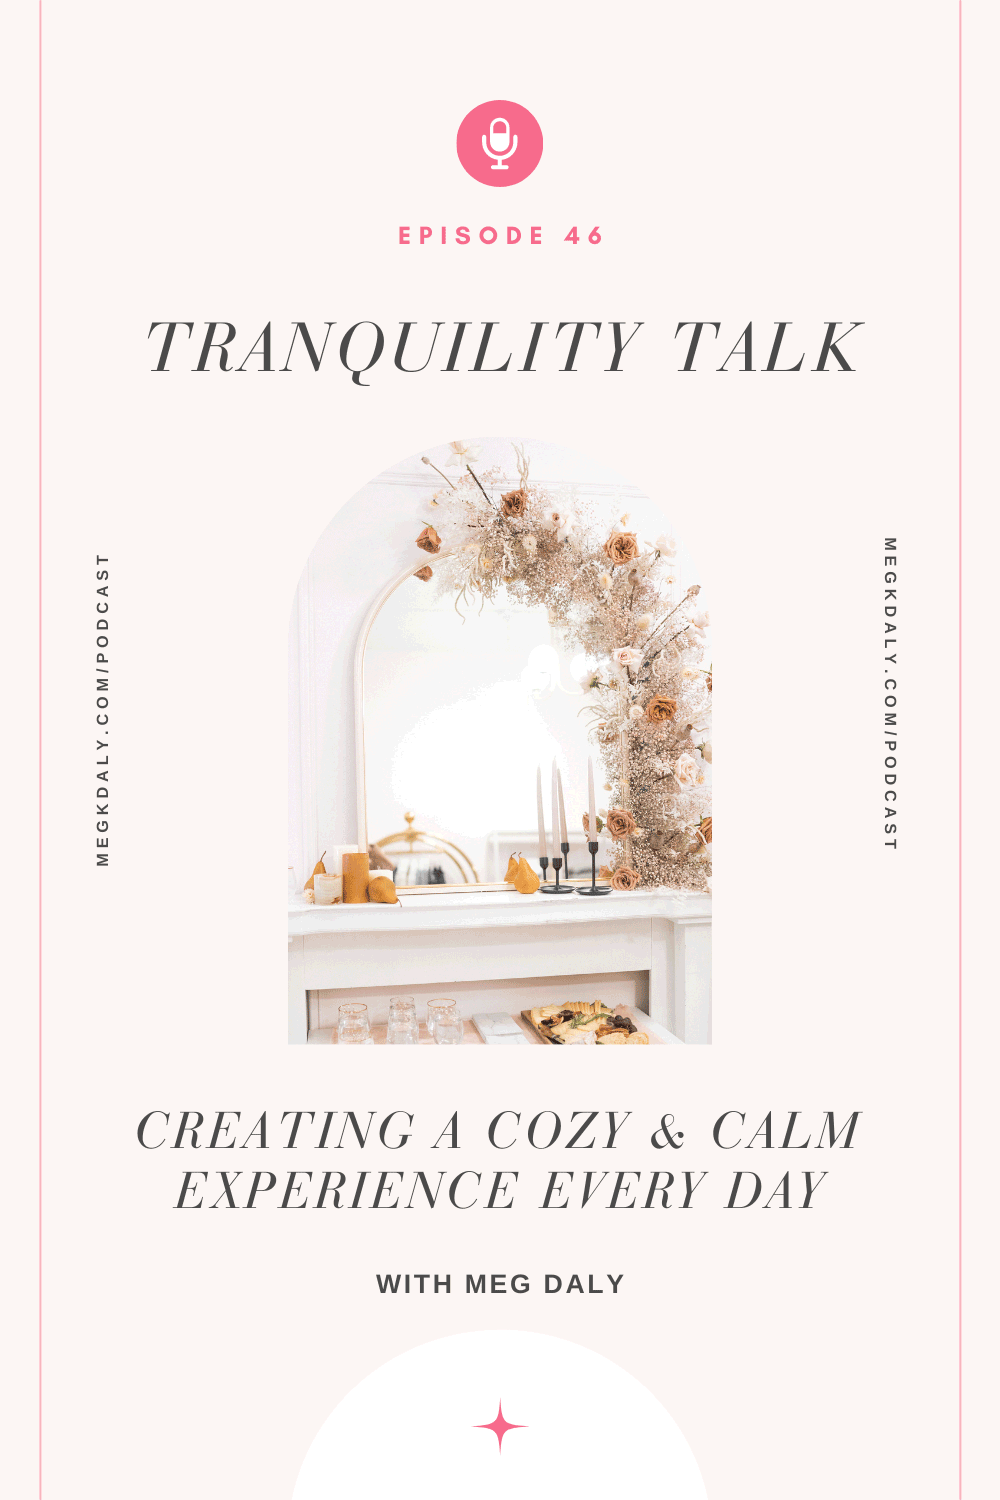 Tranquility Talk: Creating a cozy and calm experience every day - regardless of circumstances